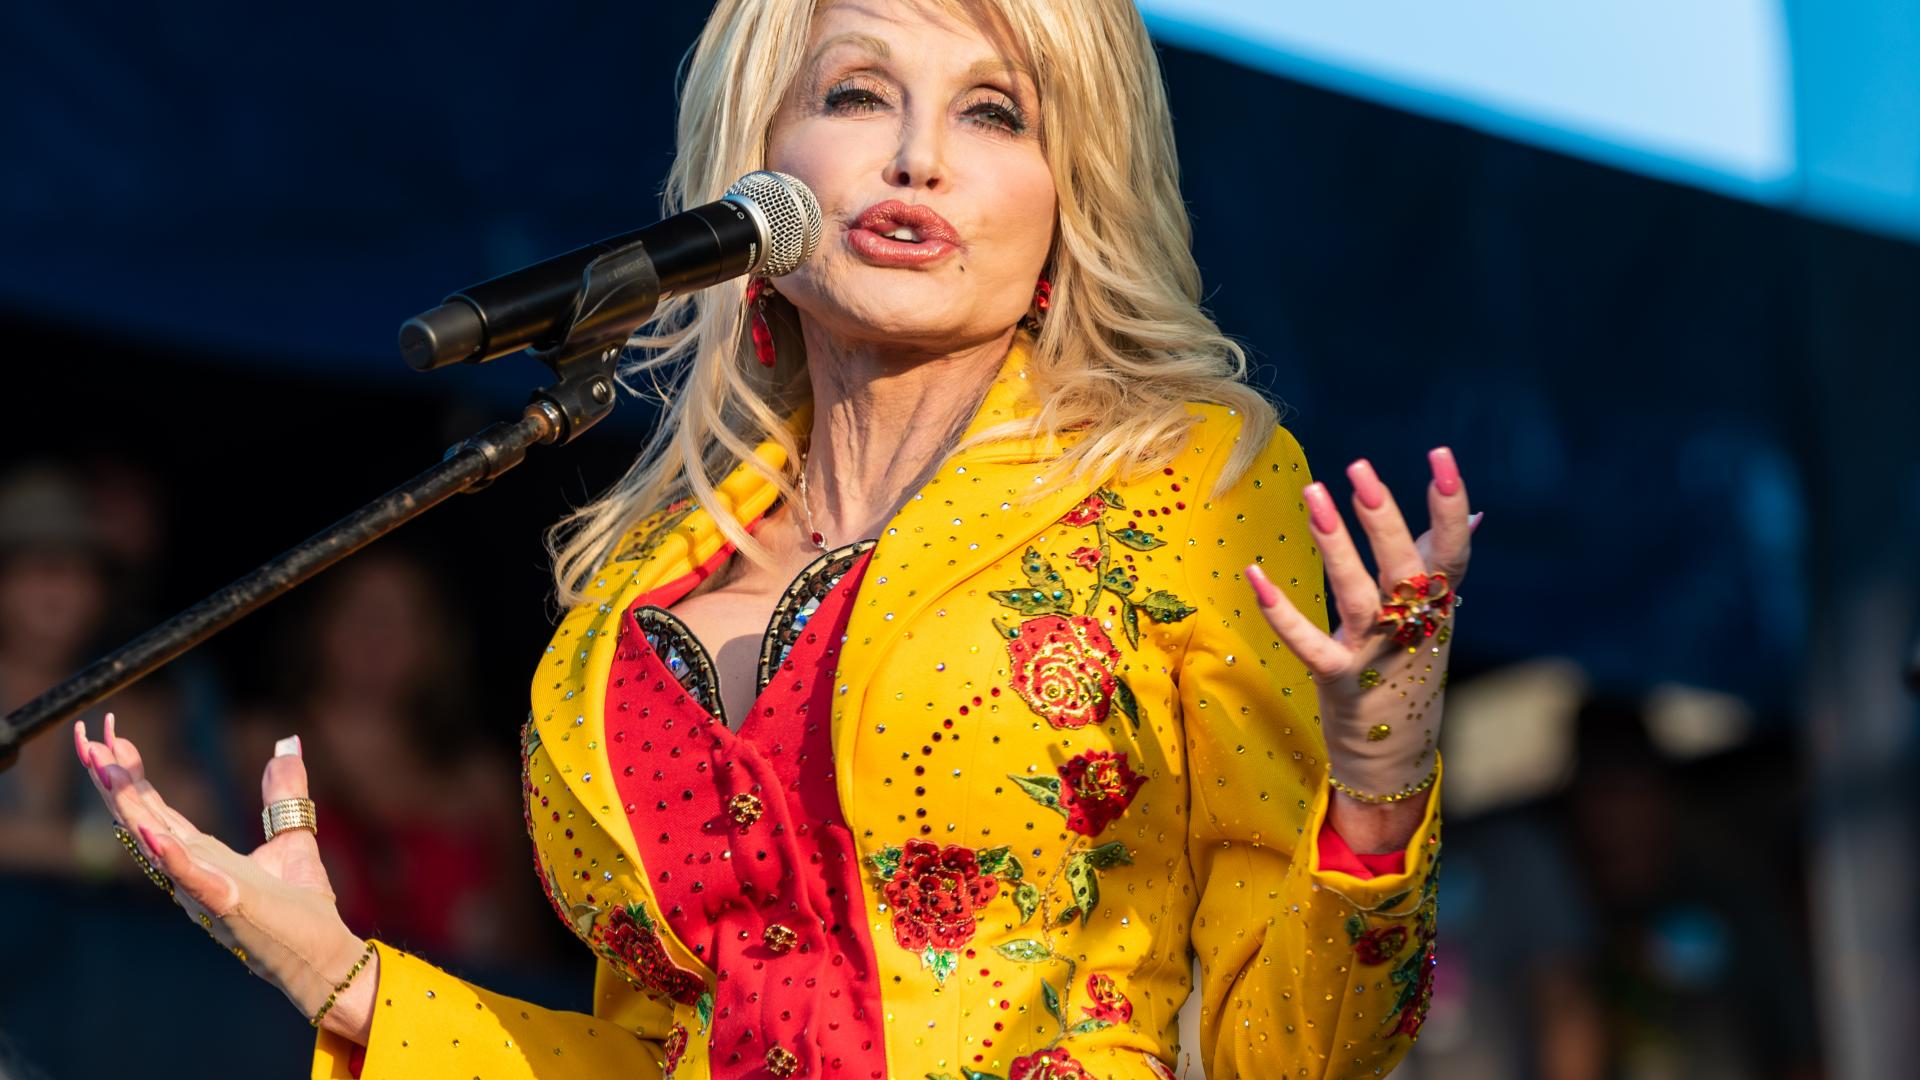 Dolly Parton Country Sängerin Bühne